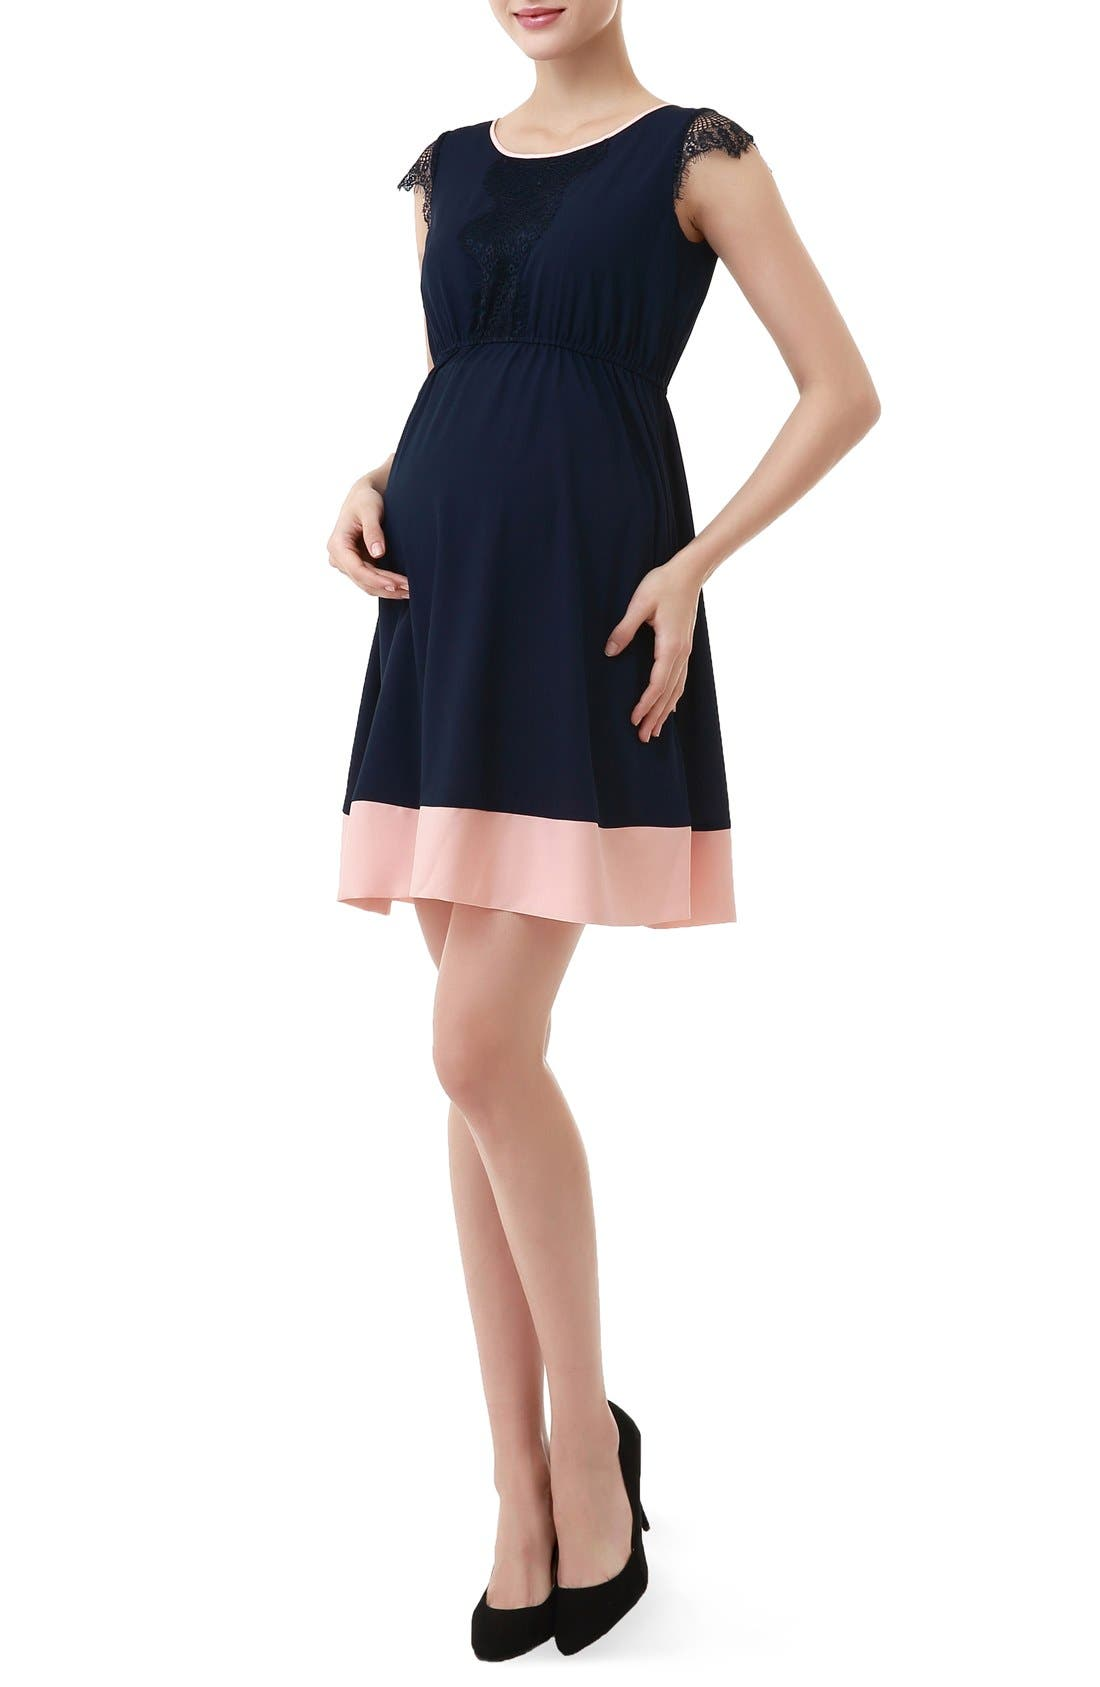 Alternate Image 1 Selected - Kimi and Kai Nell Fit & Flare Maternity Dress